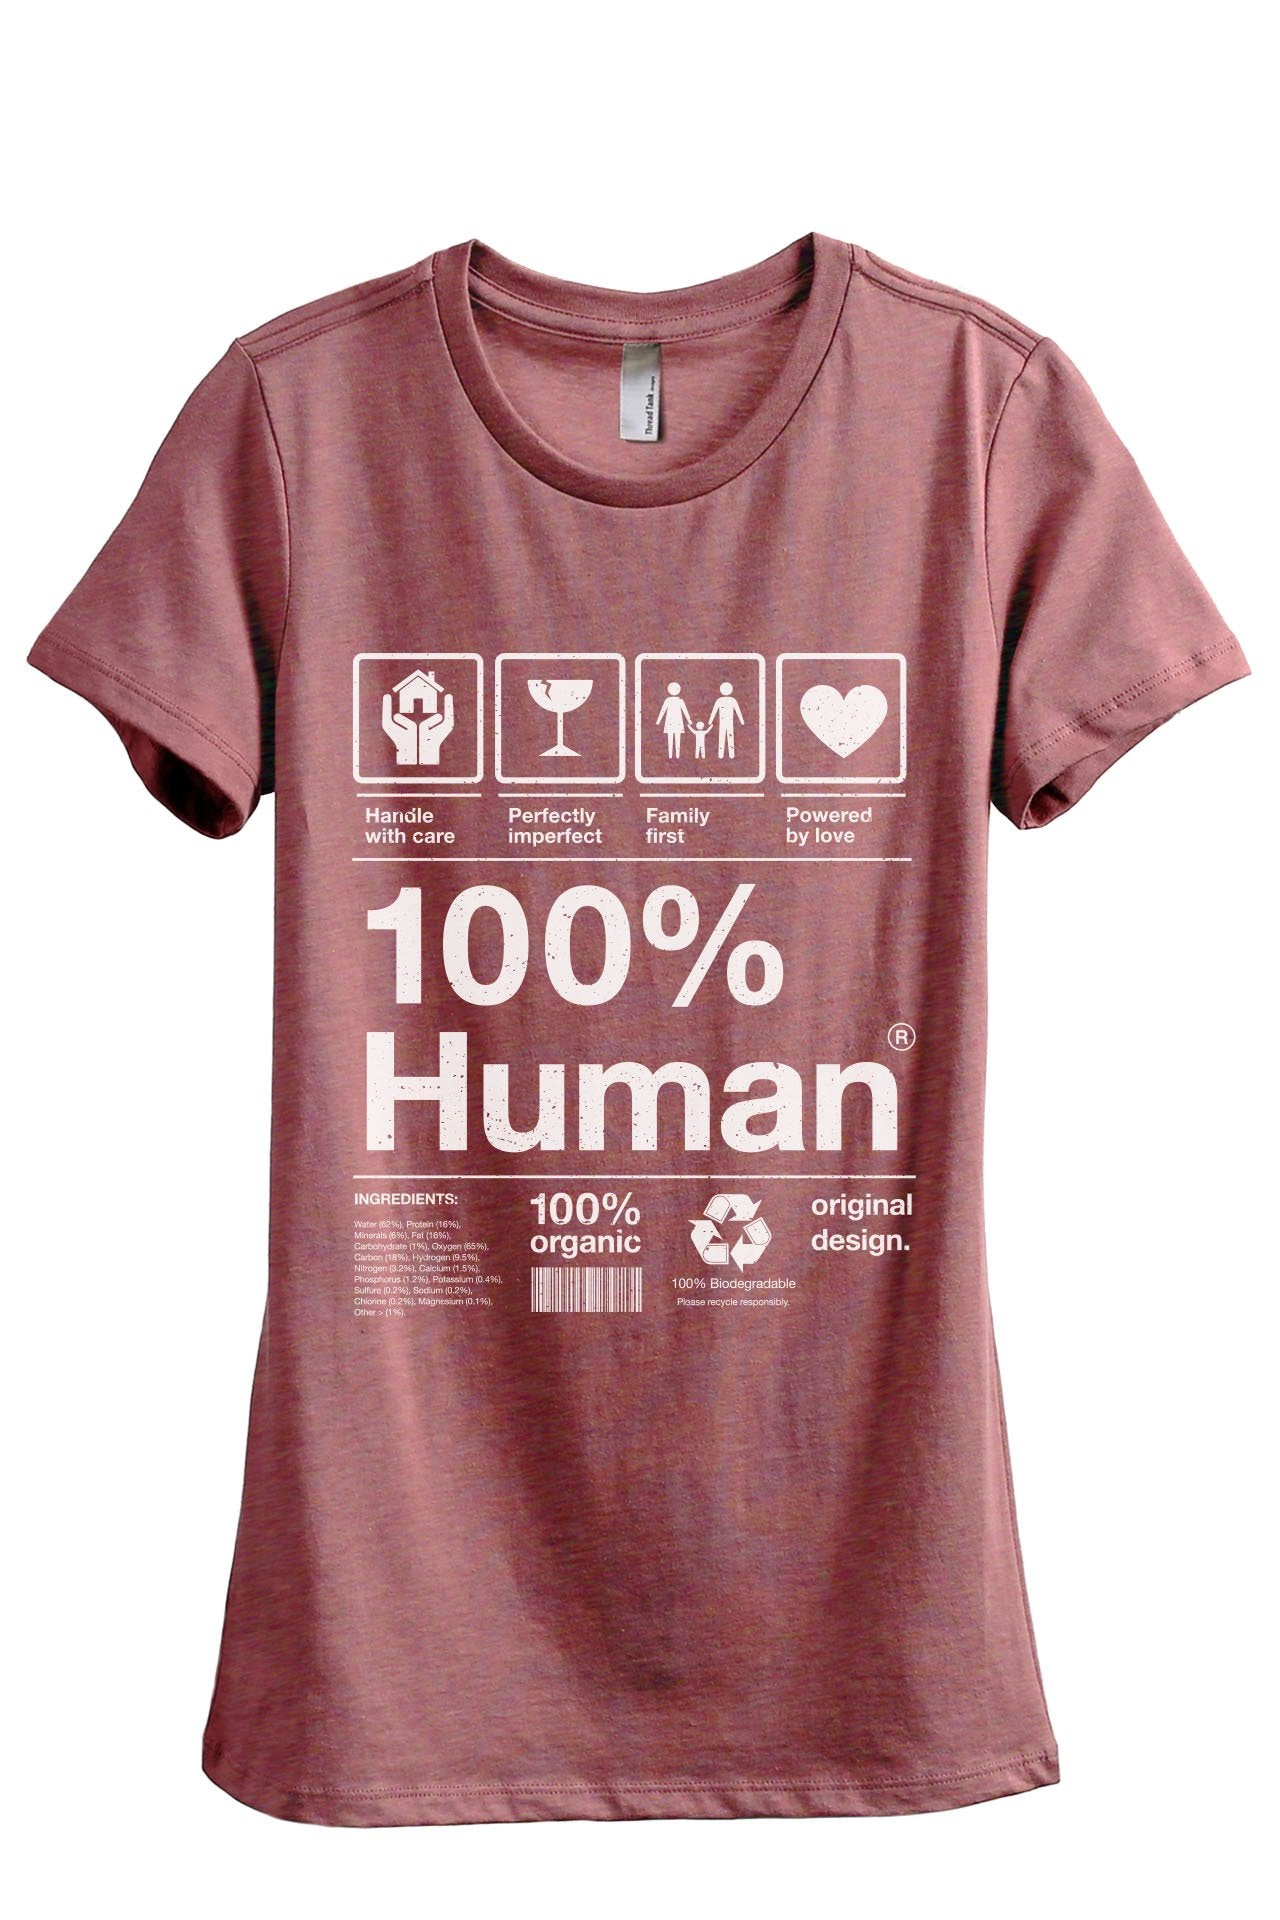 100 Percent Human - Thread Tank | Stories You Can Wear | T-Shirts, Tank Tops and Sweatshirts